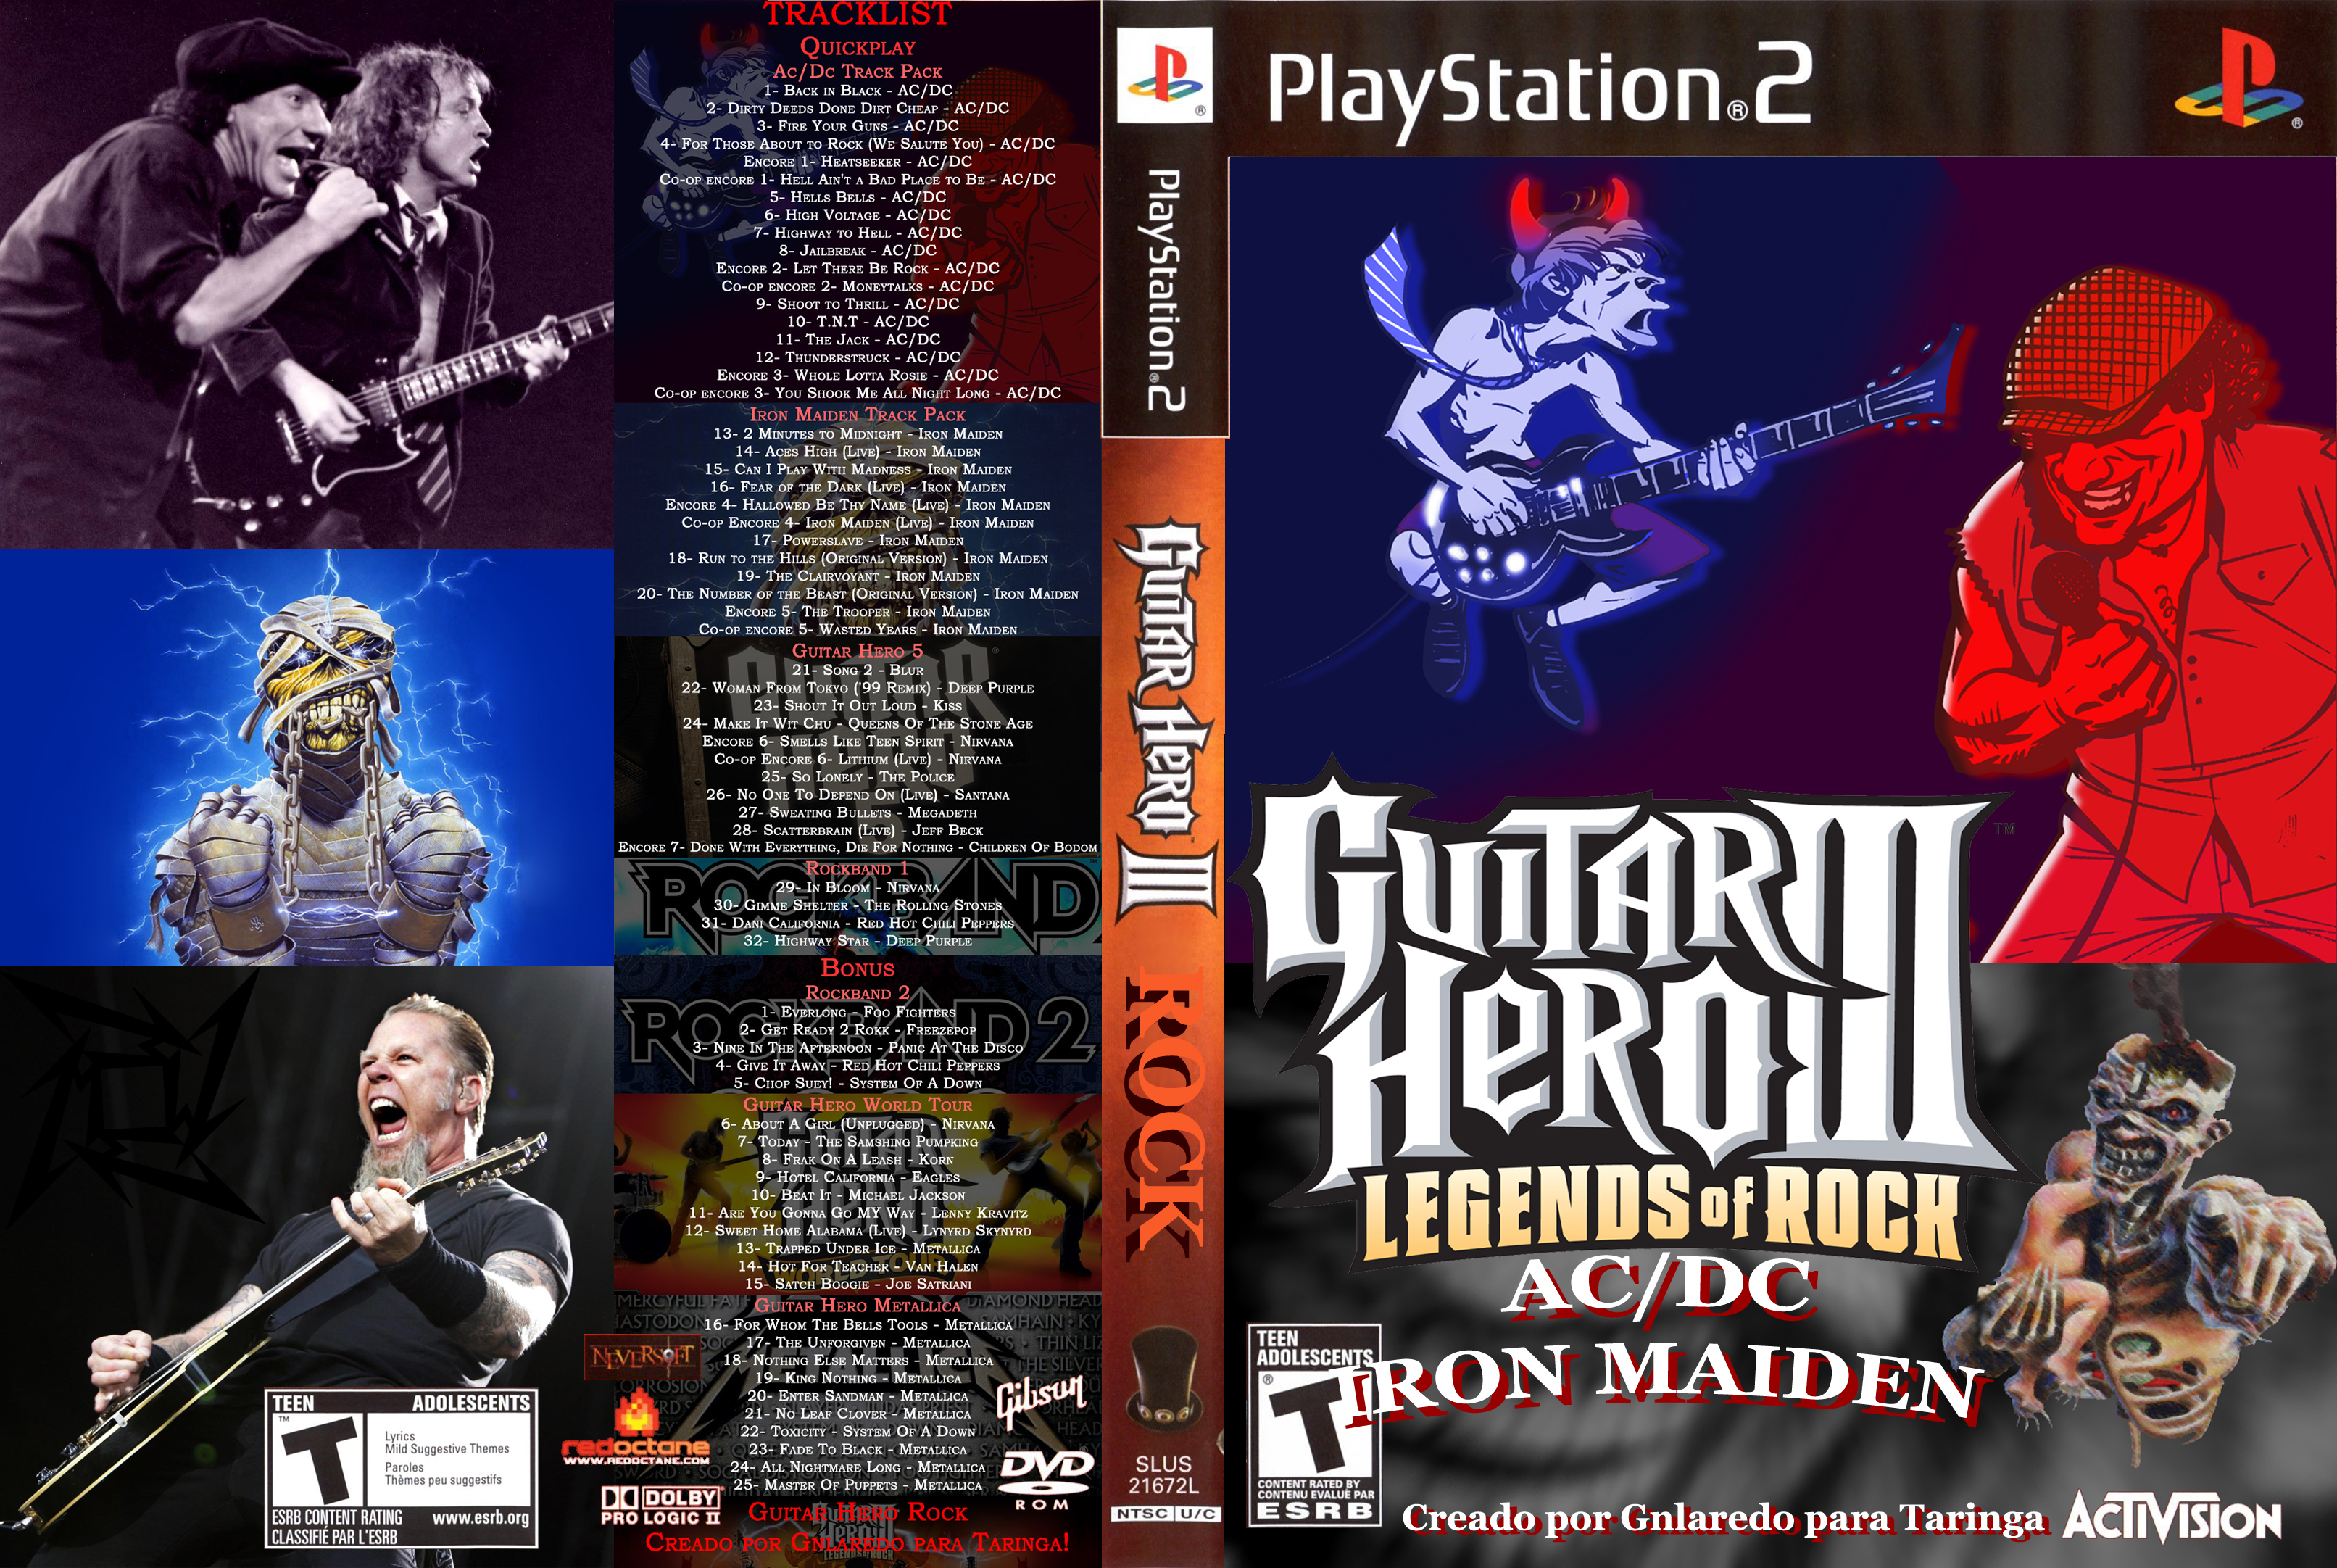 Guitar Hero Rock (Ac/Dc, Iron Maiden)[MF]